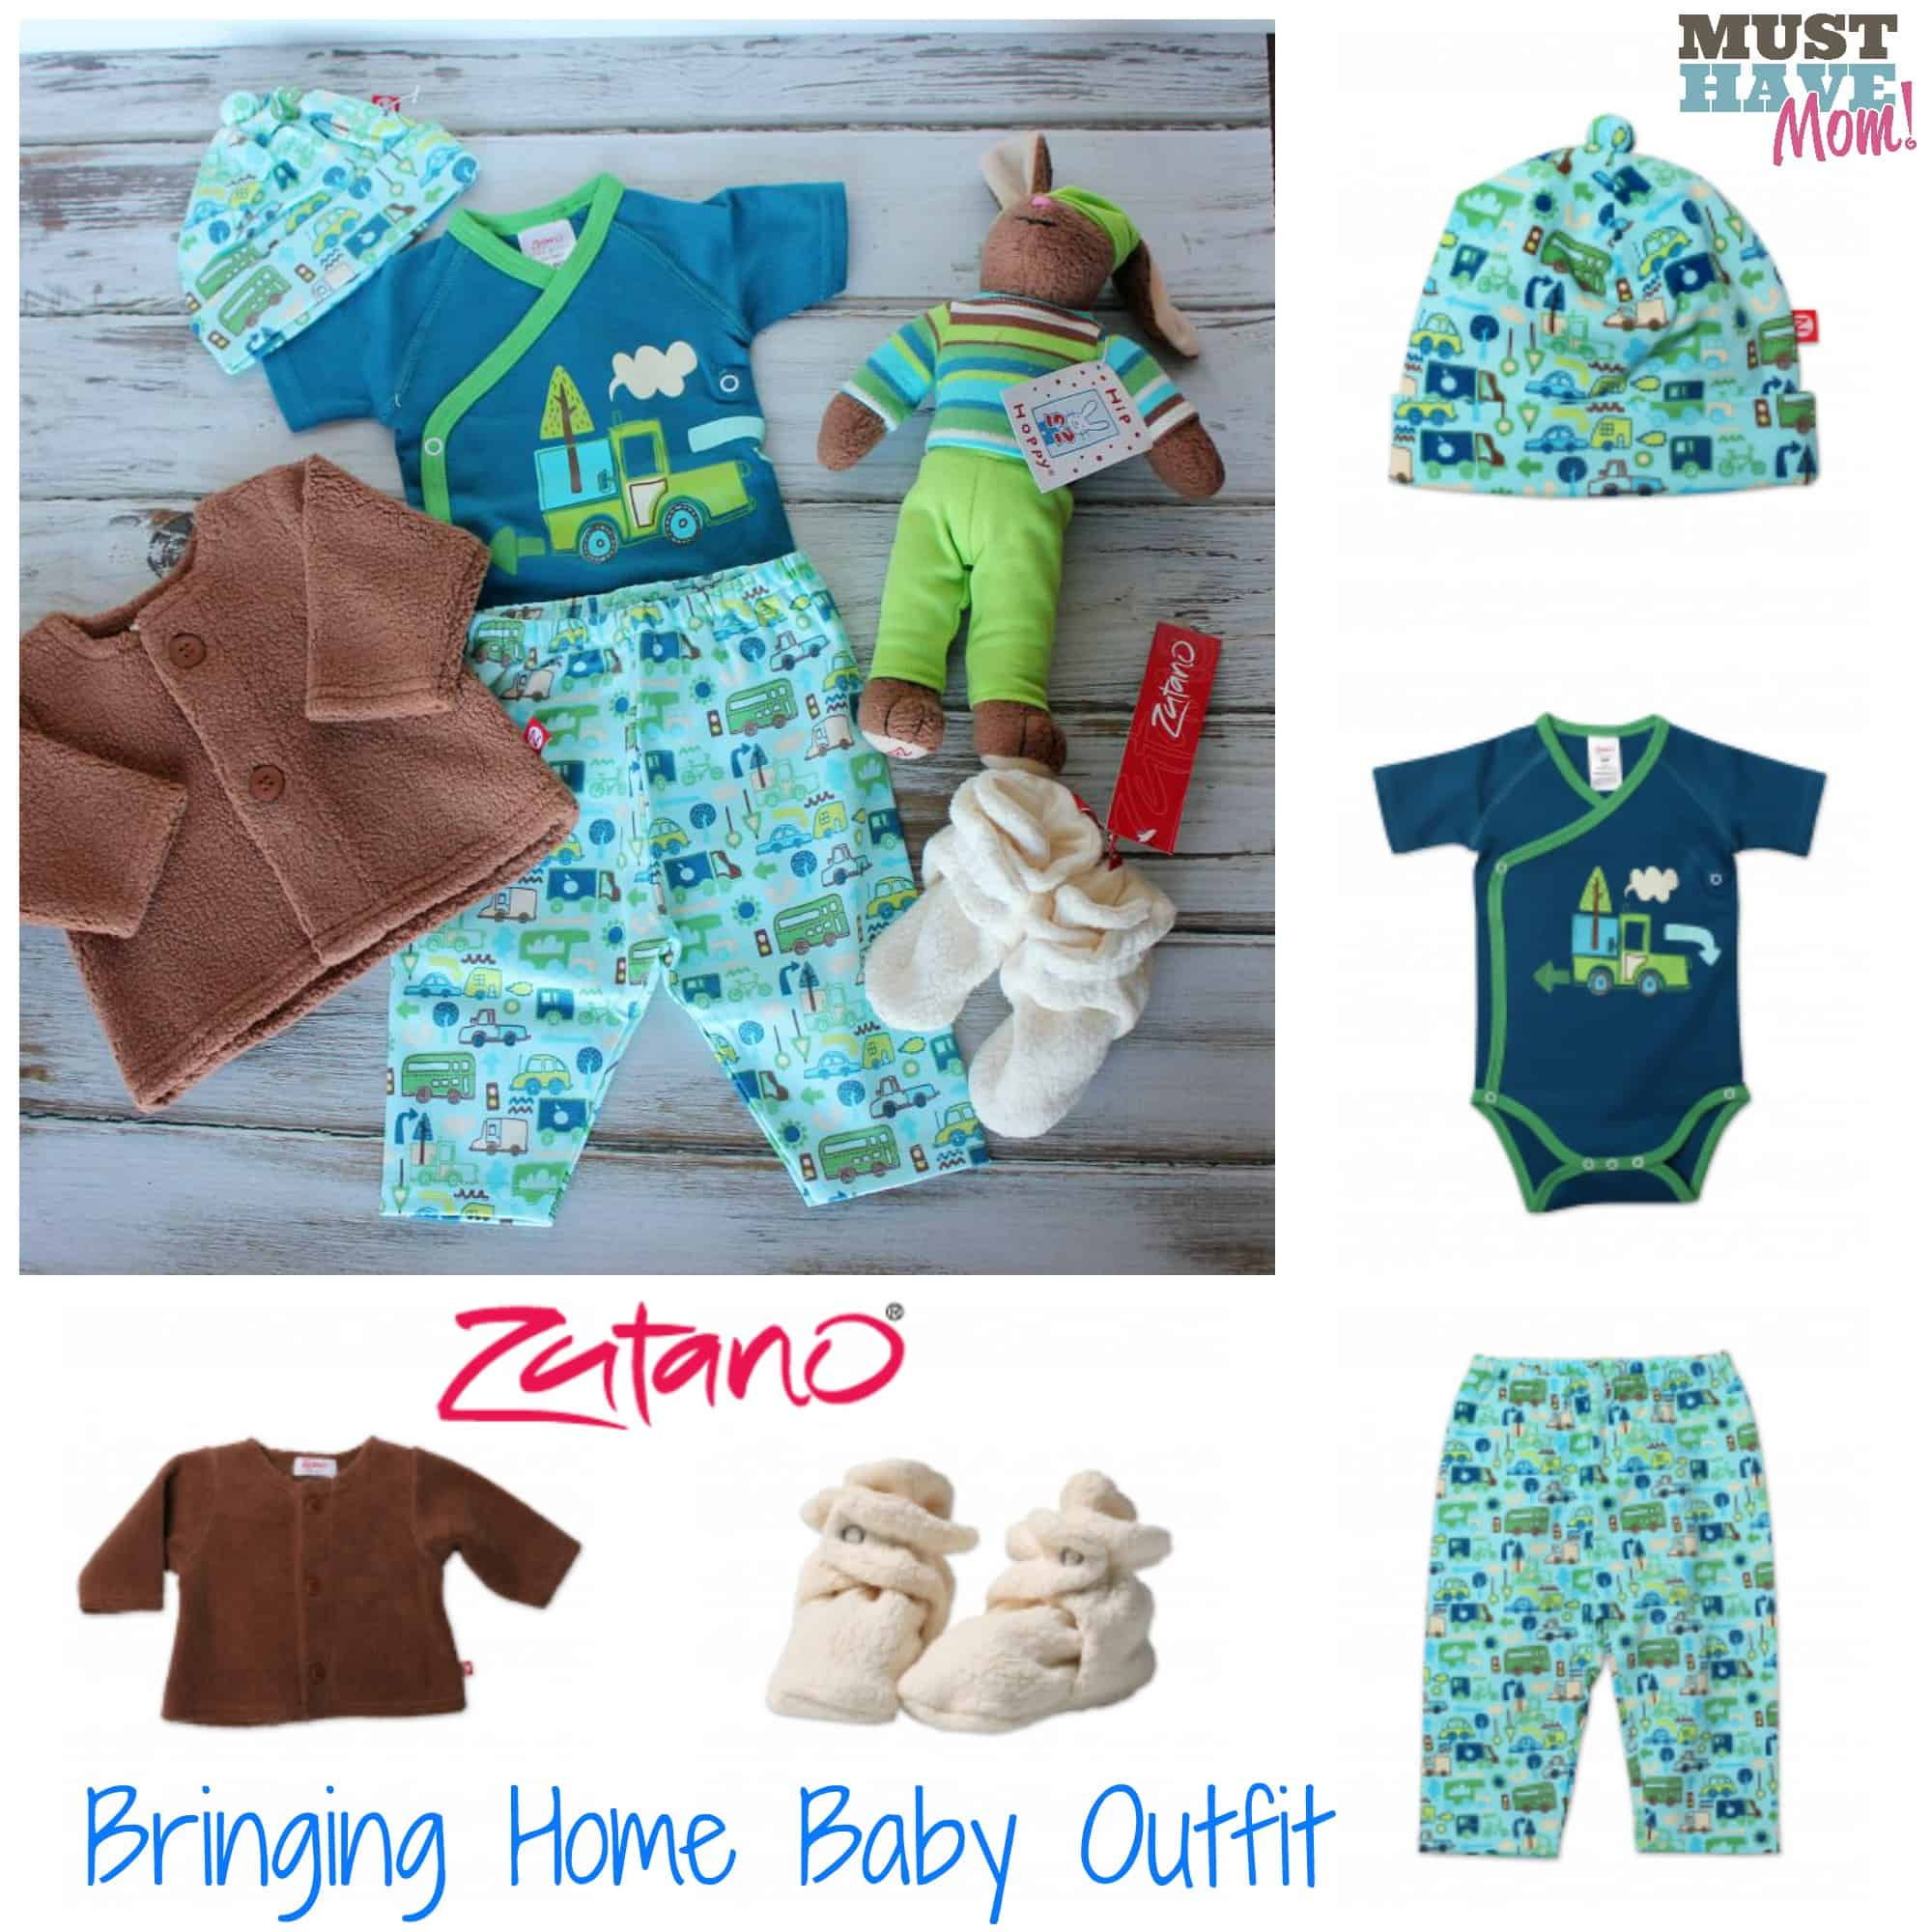 Zutano Bringing Home Baby Outfit